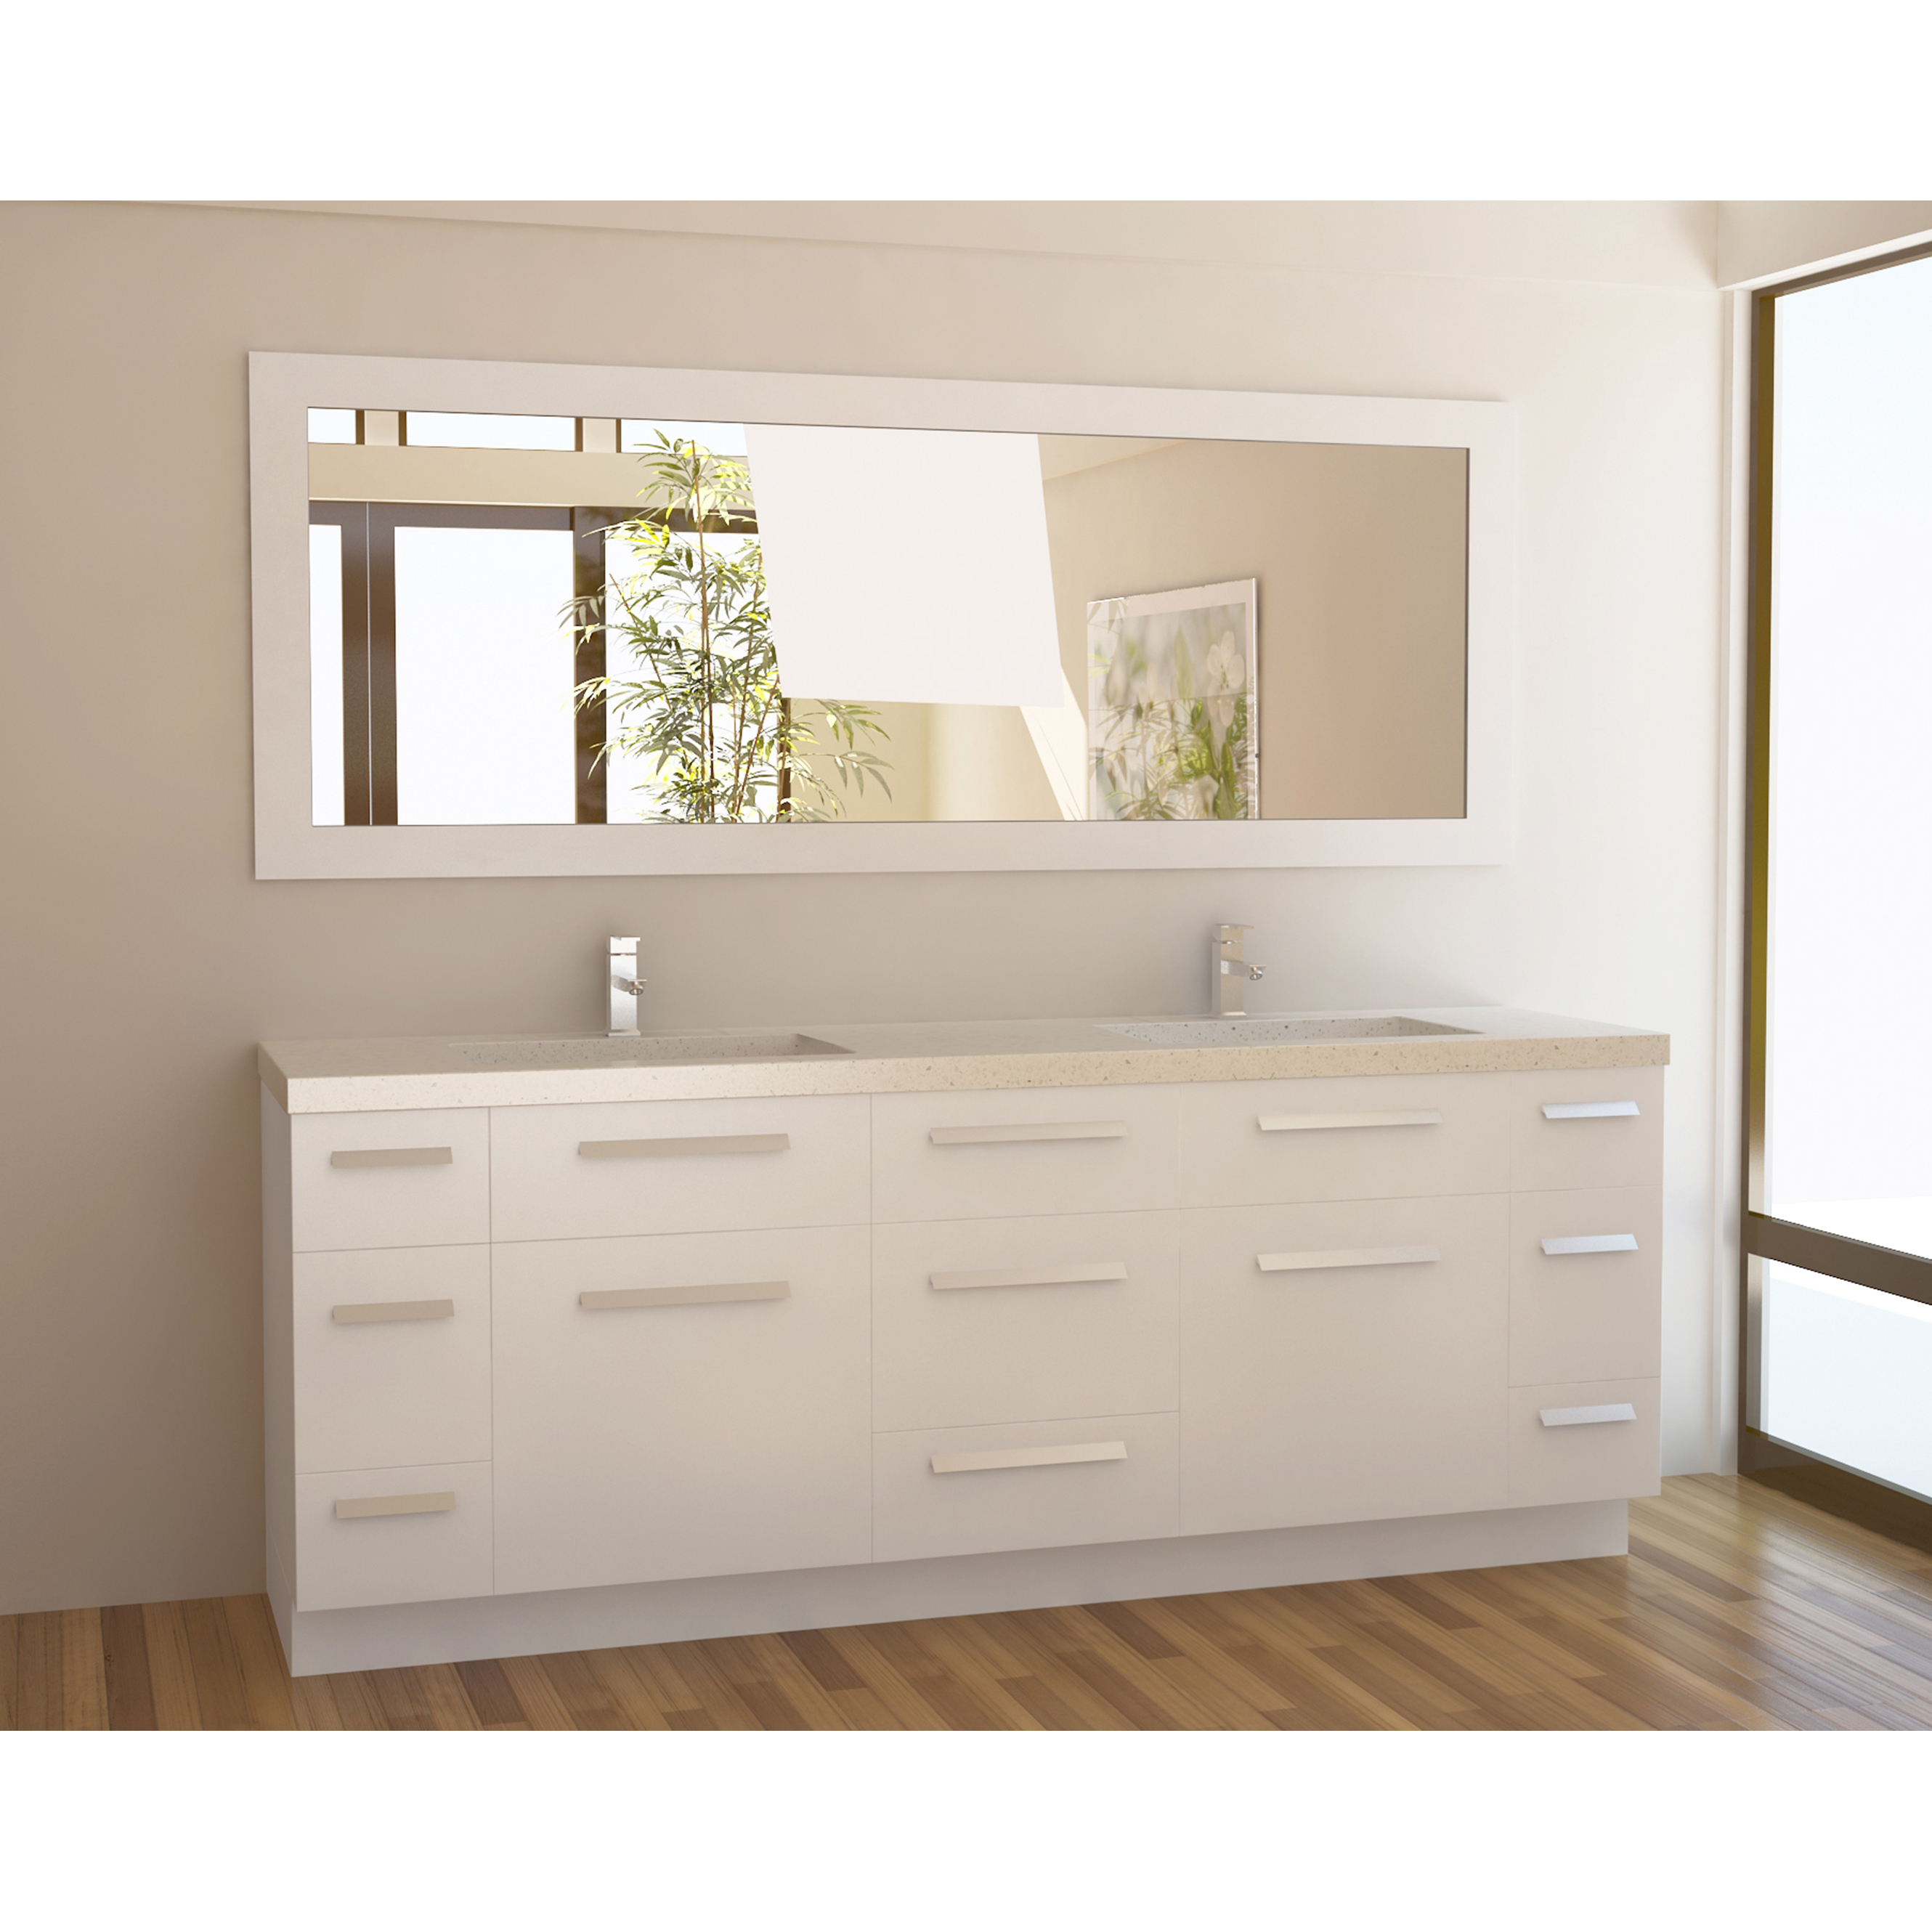 84 Inch Bathroom Vanity The Variants